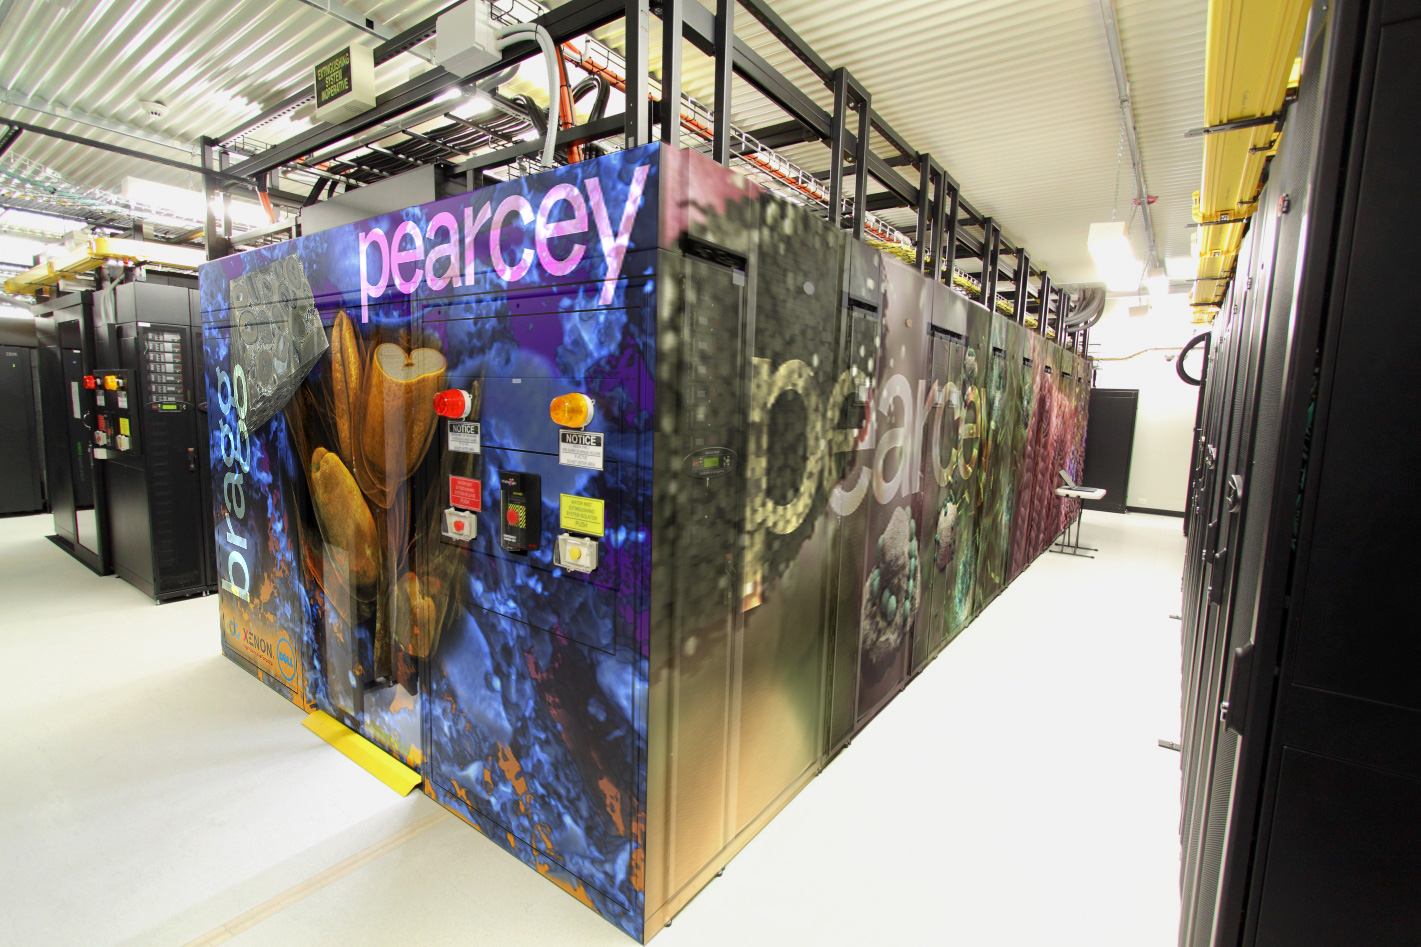 A large rectangular box containing the computer hardware, with the word pearcey on the end and side panels